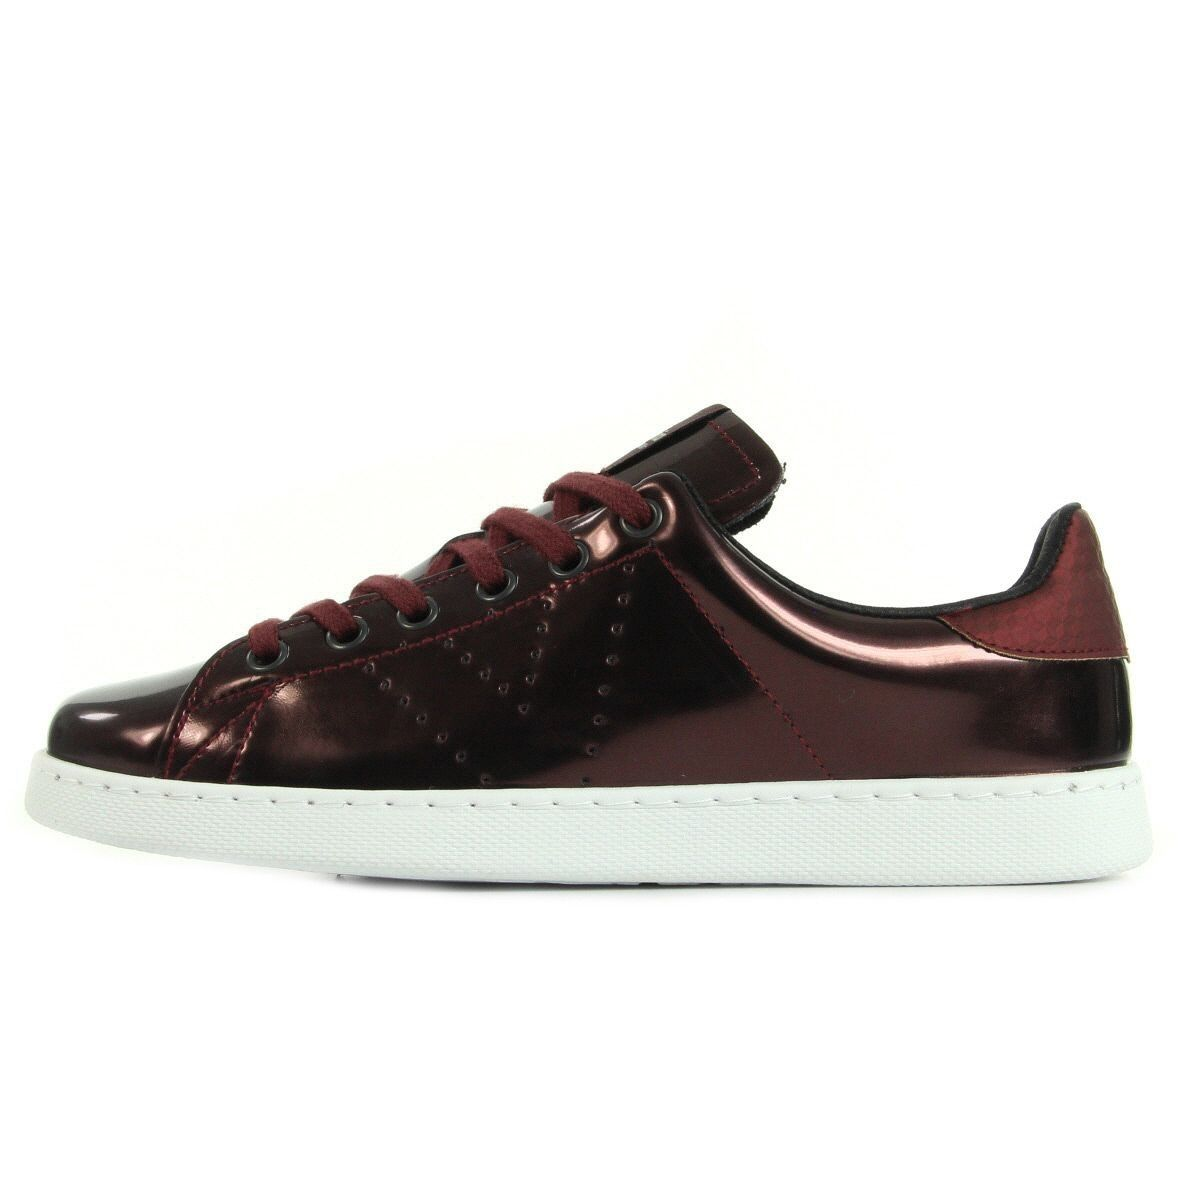 Baskets femme VICTORIA 125106 metal 37 Bordeaux Bordeaux